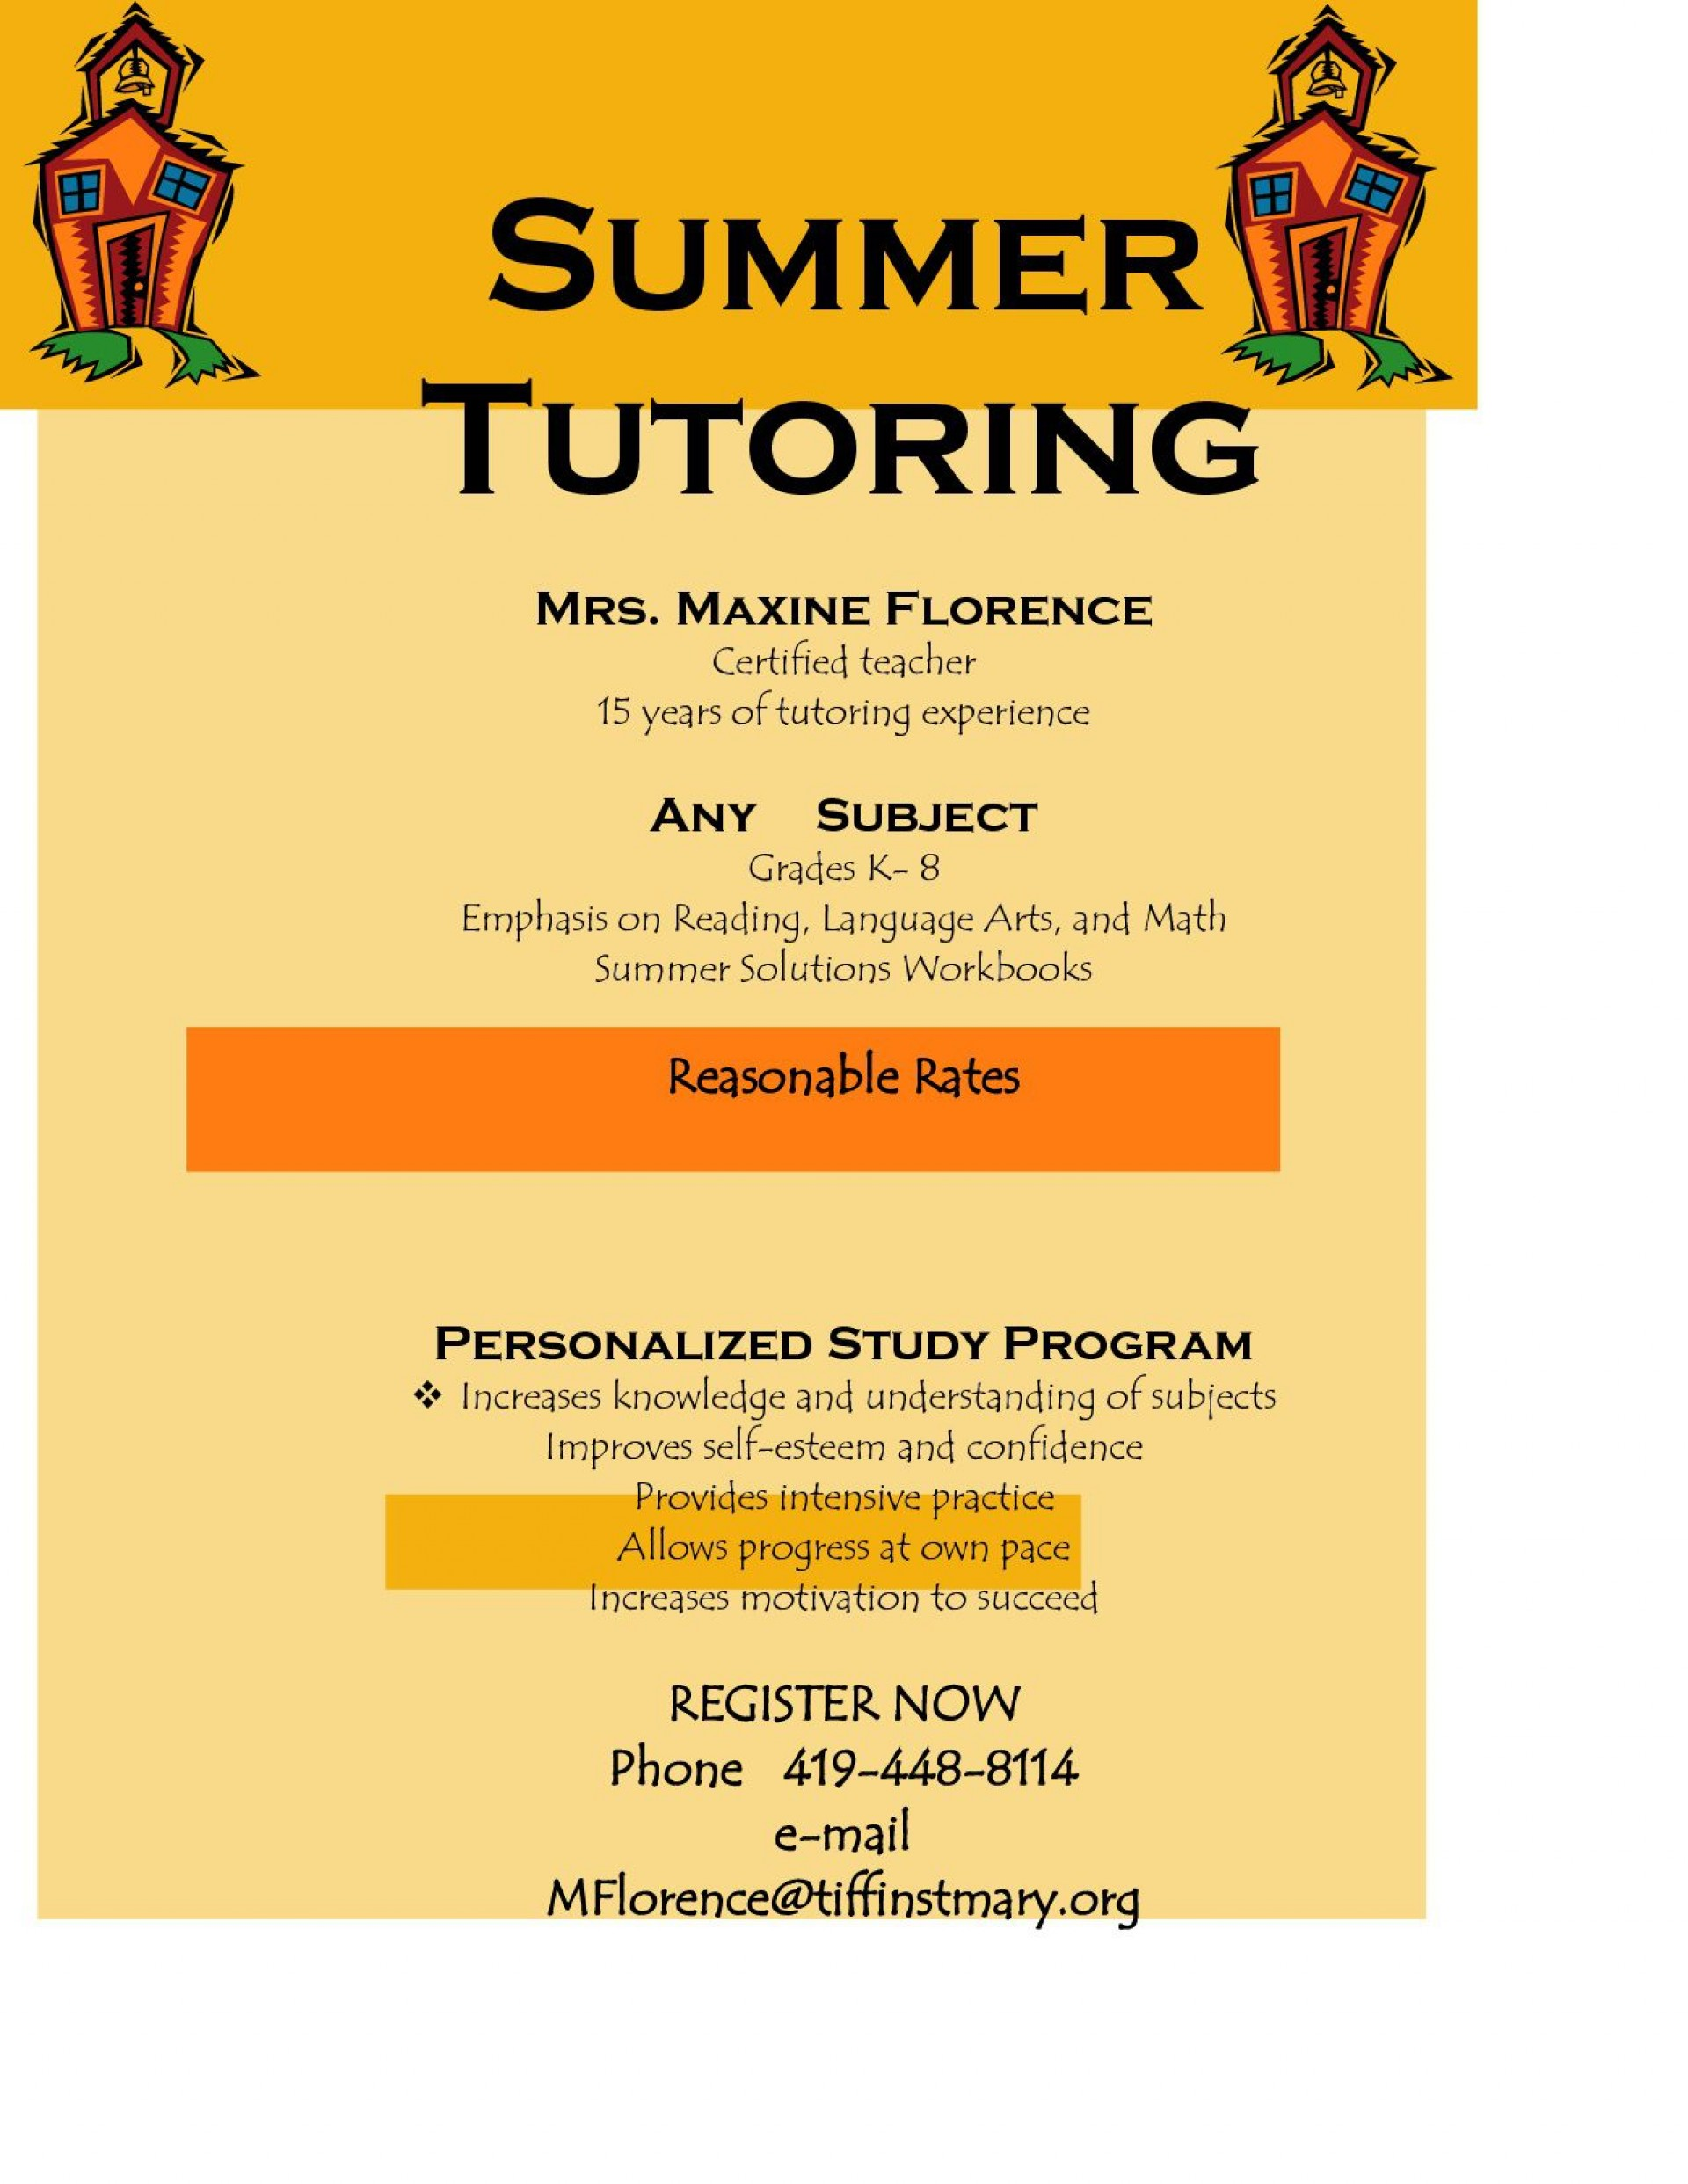 006 Excellent Tutoring Flyer Template Free Image  Word1920